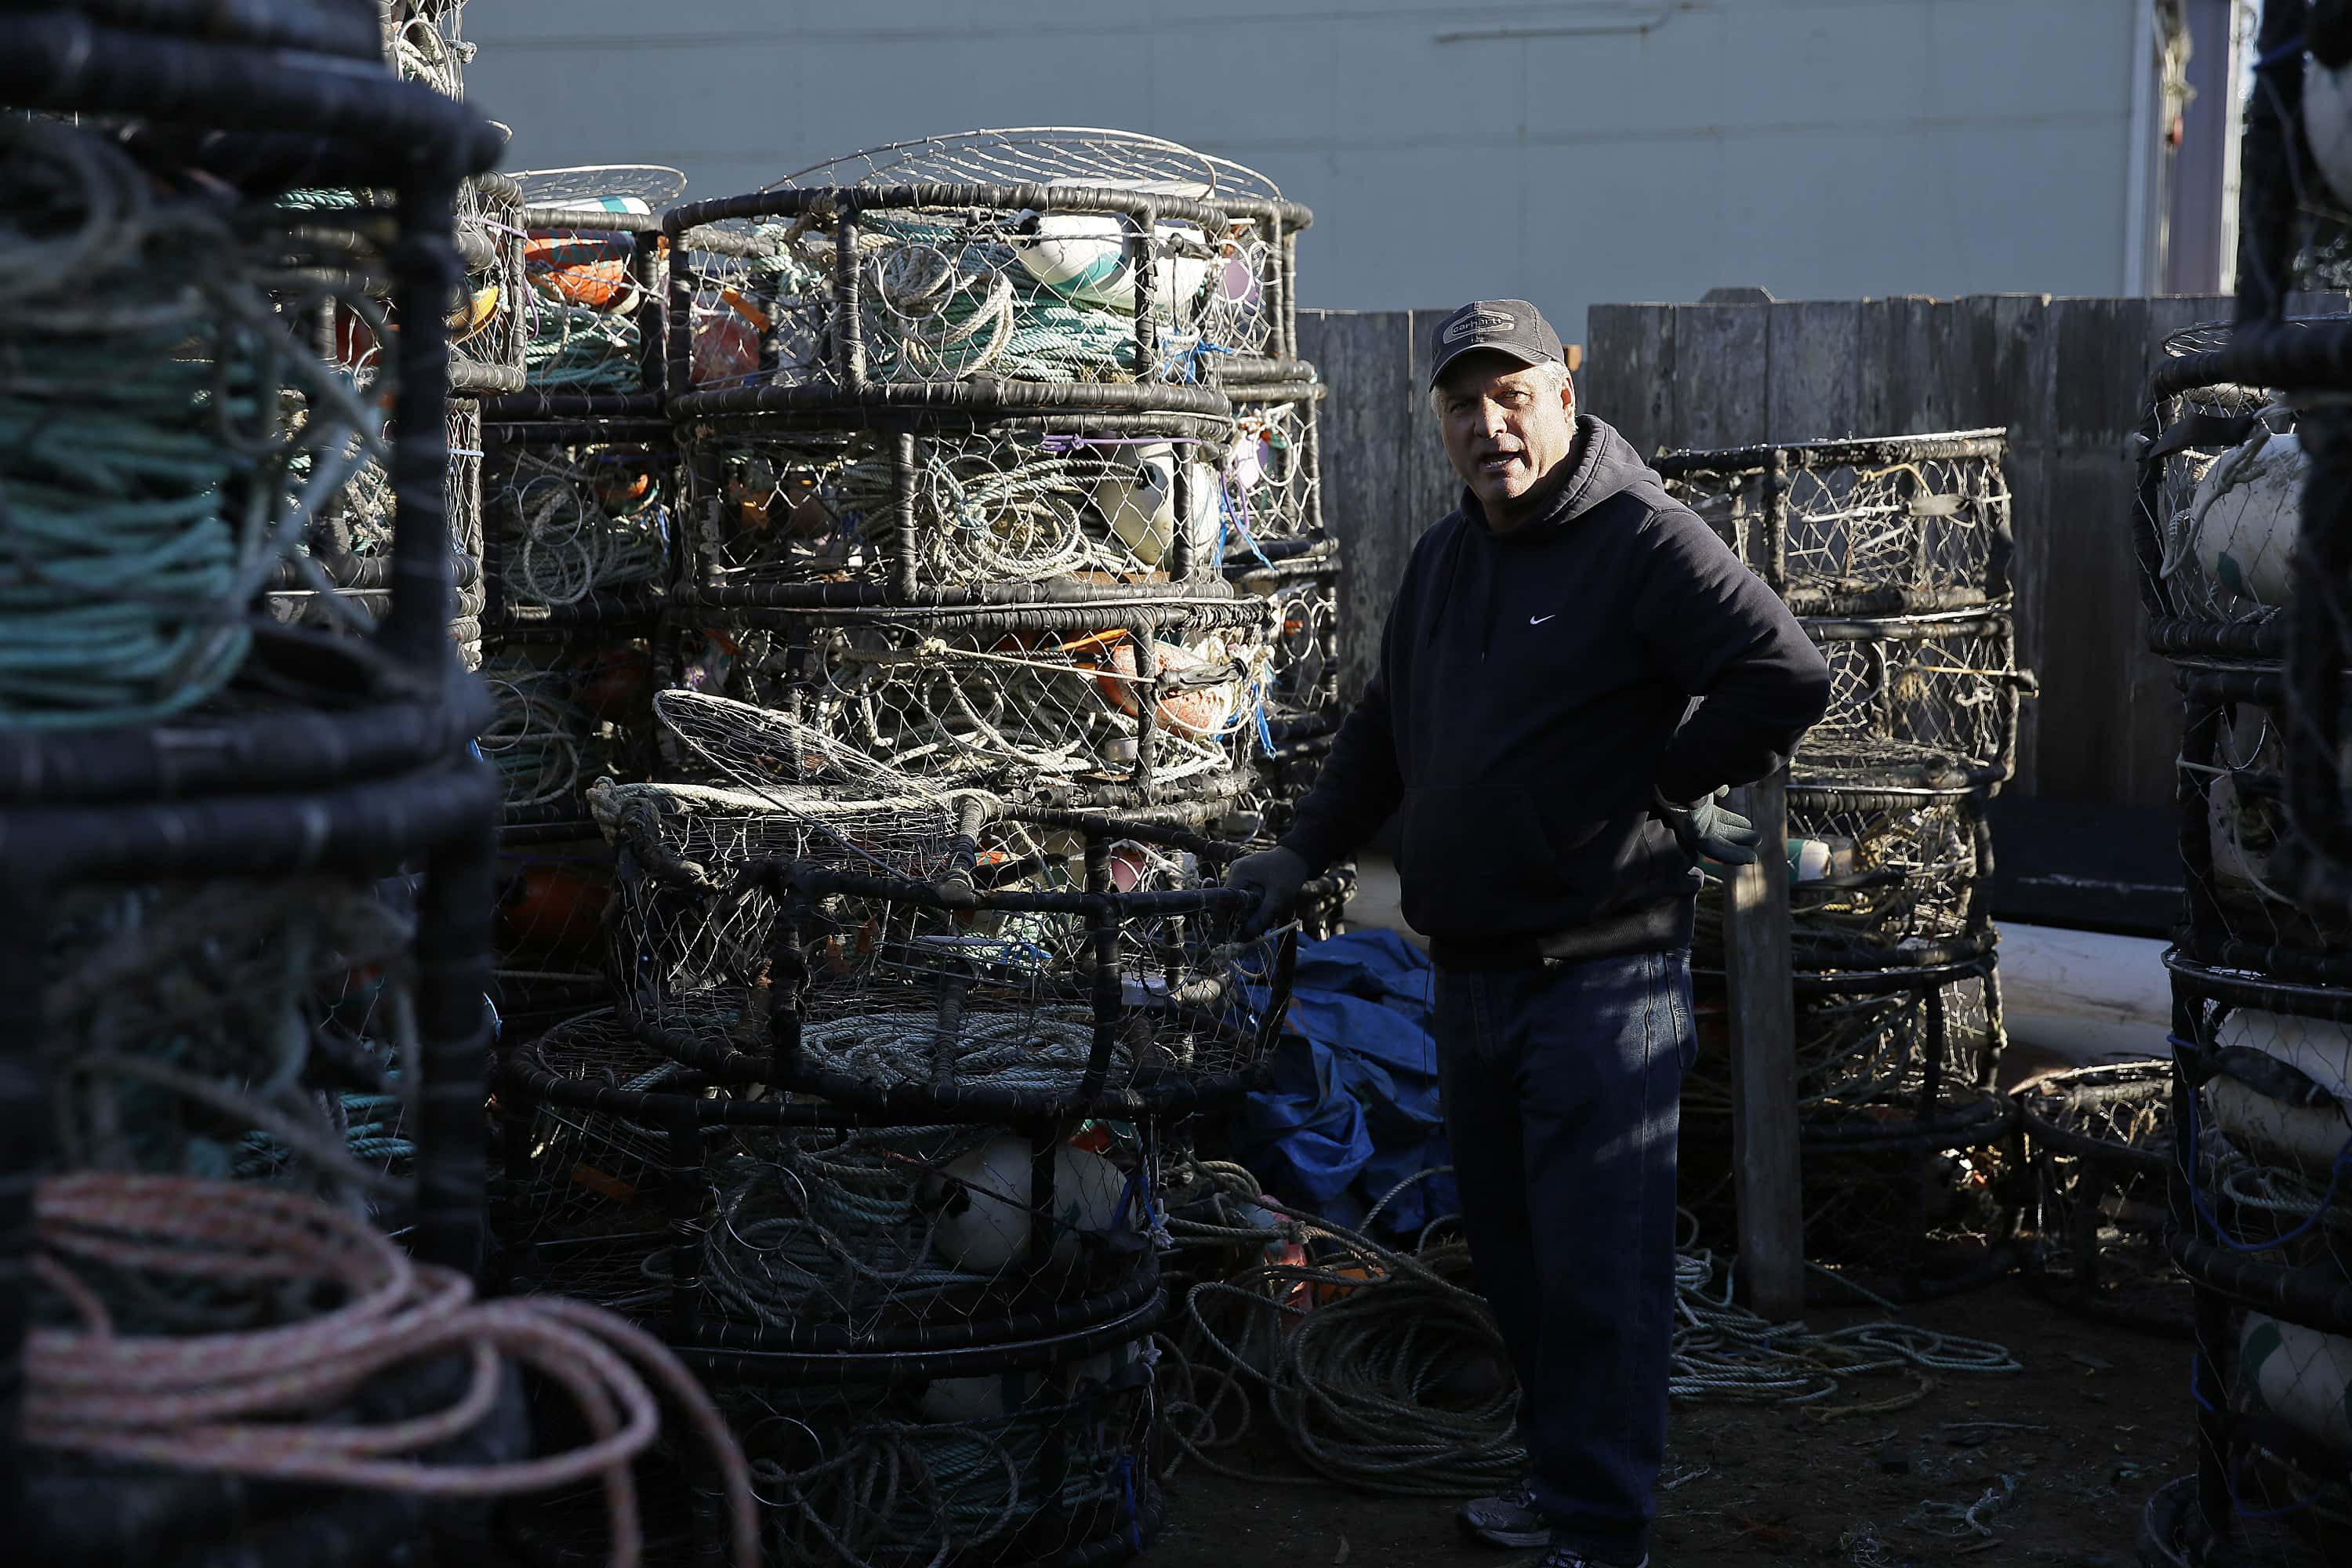 FILE - In this Nov. 12, 2015, file photo, crab fisherman Jim Anderson poses by his crab pots in Half Moon Bay, Calif. California Gov. Jerry Brown announced Friday, Sept. 23, 2016, that he signed legislation meant to bring down the record numbers of whales getting caught in fishing gear meant for Dungeness crabs, causing unknown numbers of the entangled mammals to drown or starve. (AP Photo/Eric Risberg, File)